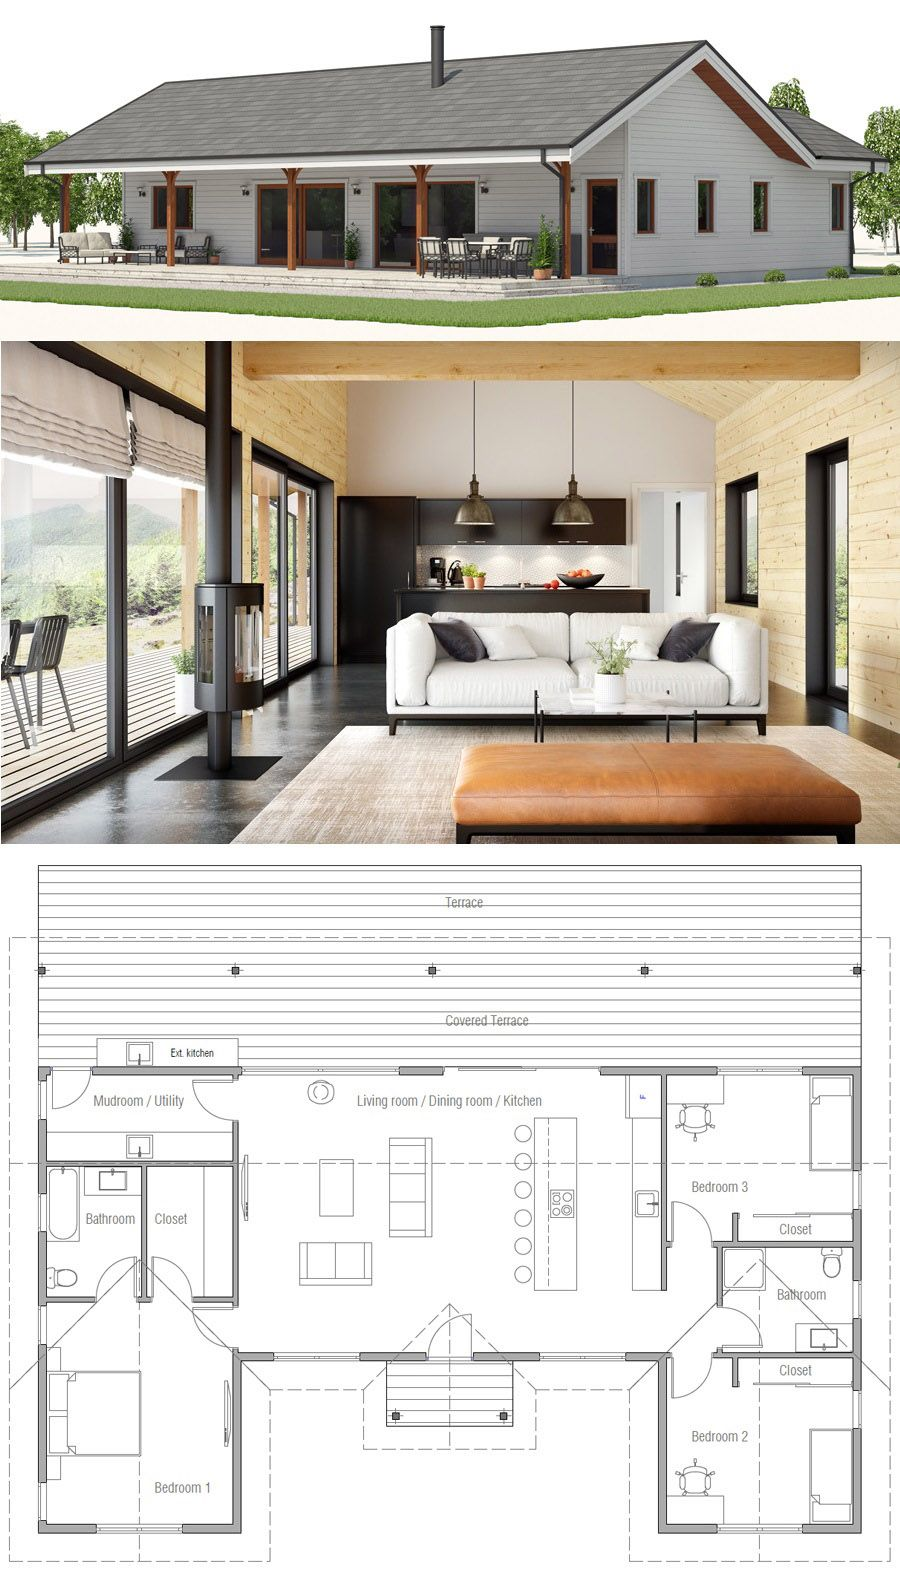 Small House Plan Home Plans House Designs Housedesign Adhouseplans Architecture Homeplan Homepla New House Plans House Plans Farmhouse Small House Plans